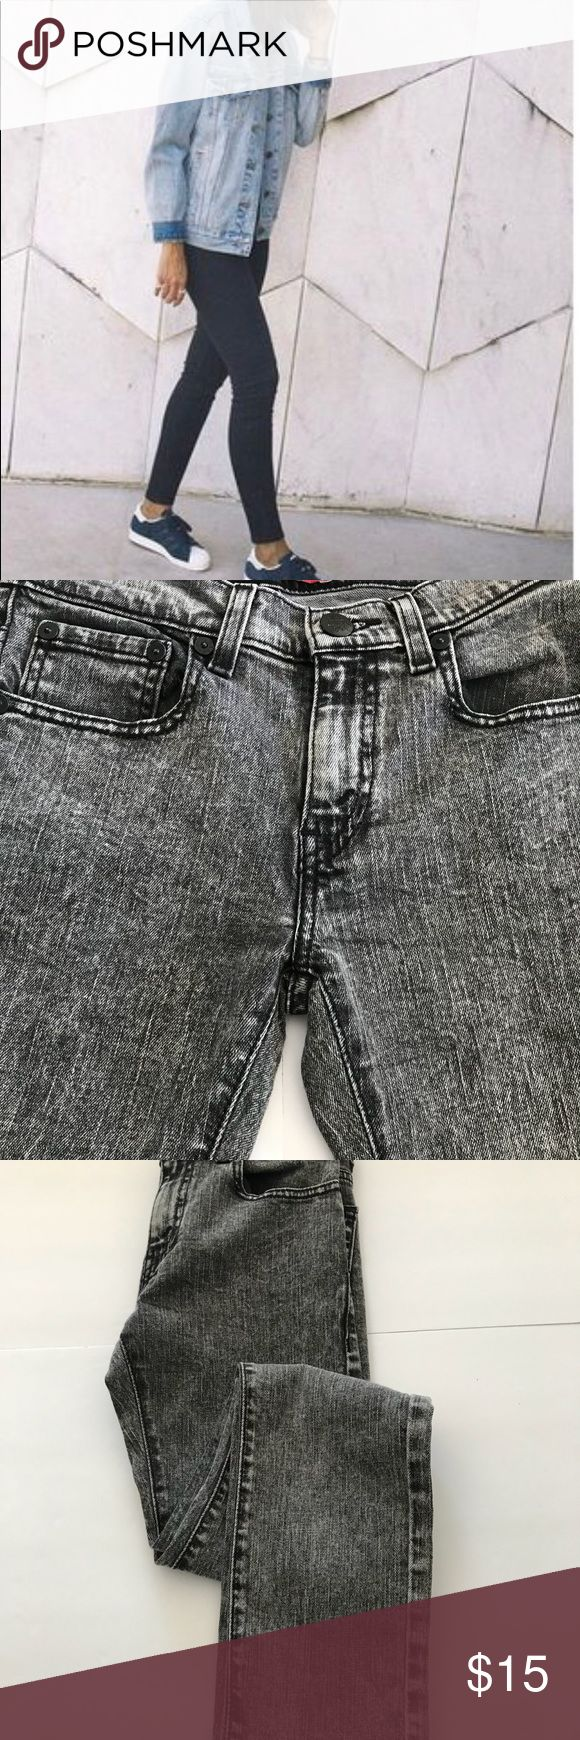 """Levi's Super Skinny 510 Love these Levi's. Super skinny.. The first pic is the fit, and the rest is the actual jean. The color is a acid wash Grey.  Worn a handful of times, in fabulous condition  Measurements  Waist 13"""" Length 27.5"""" Super low price Levi's Jeans Skinny"""